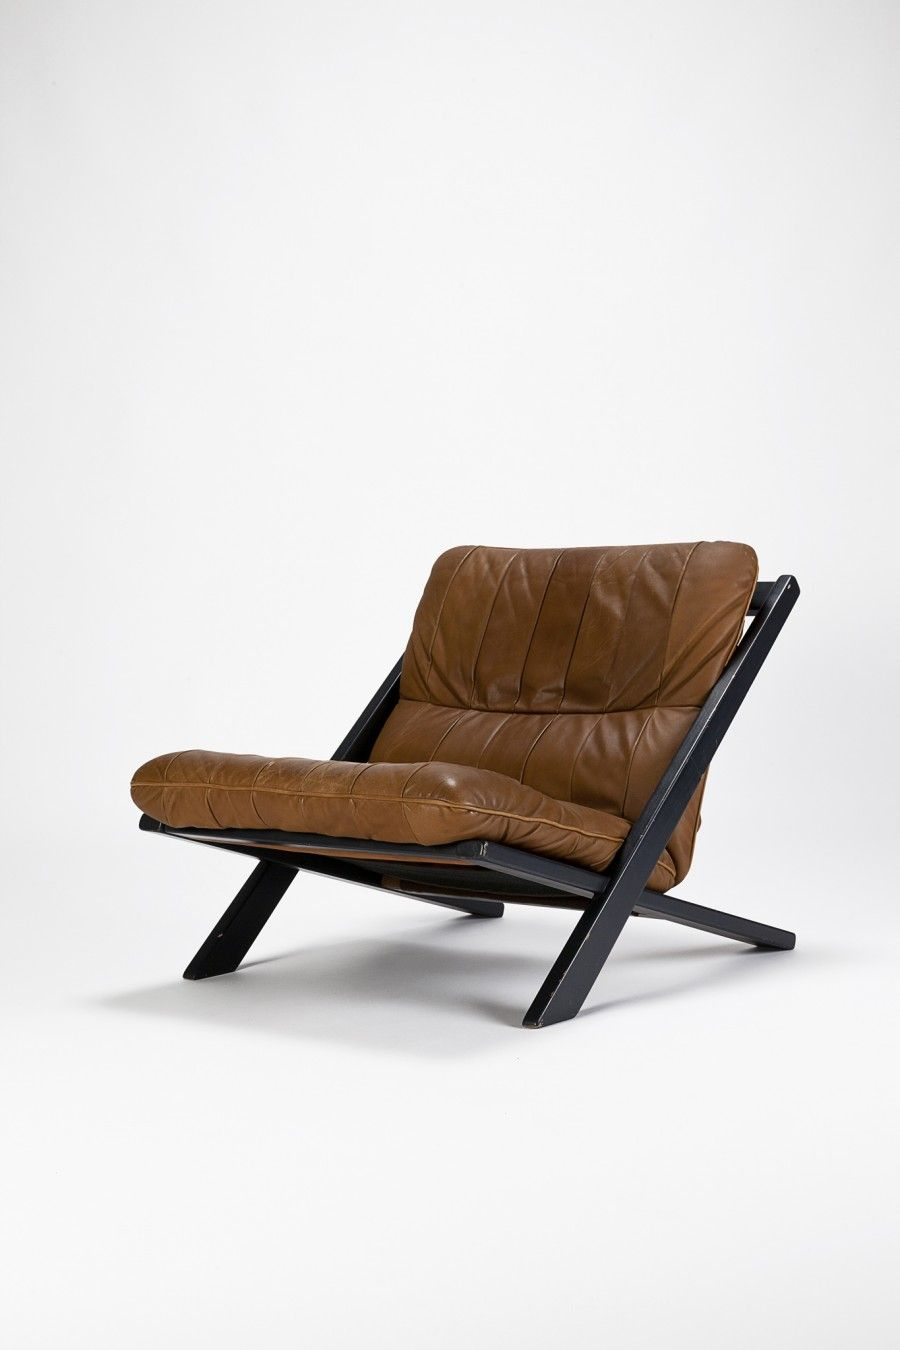 Ueli Berger Attributed; Lacquered Wood and Leather Lounge Chair by De Sede, 1970s.